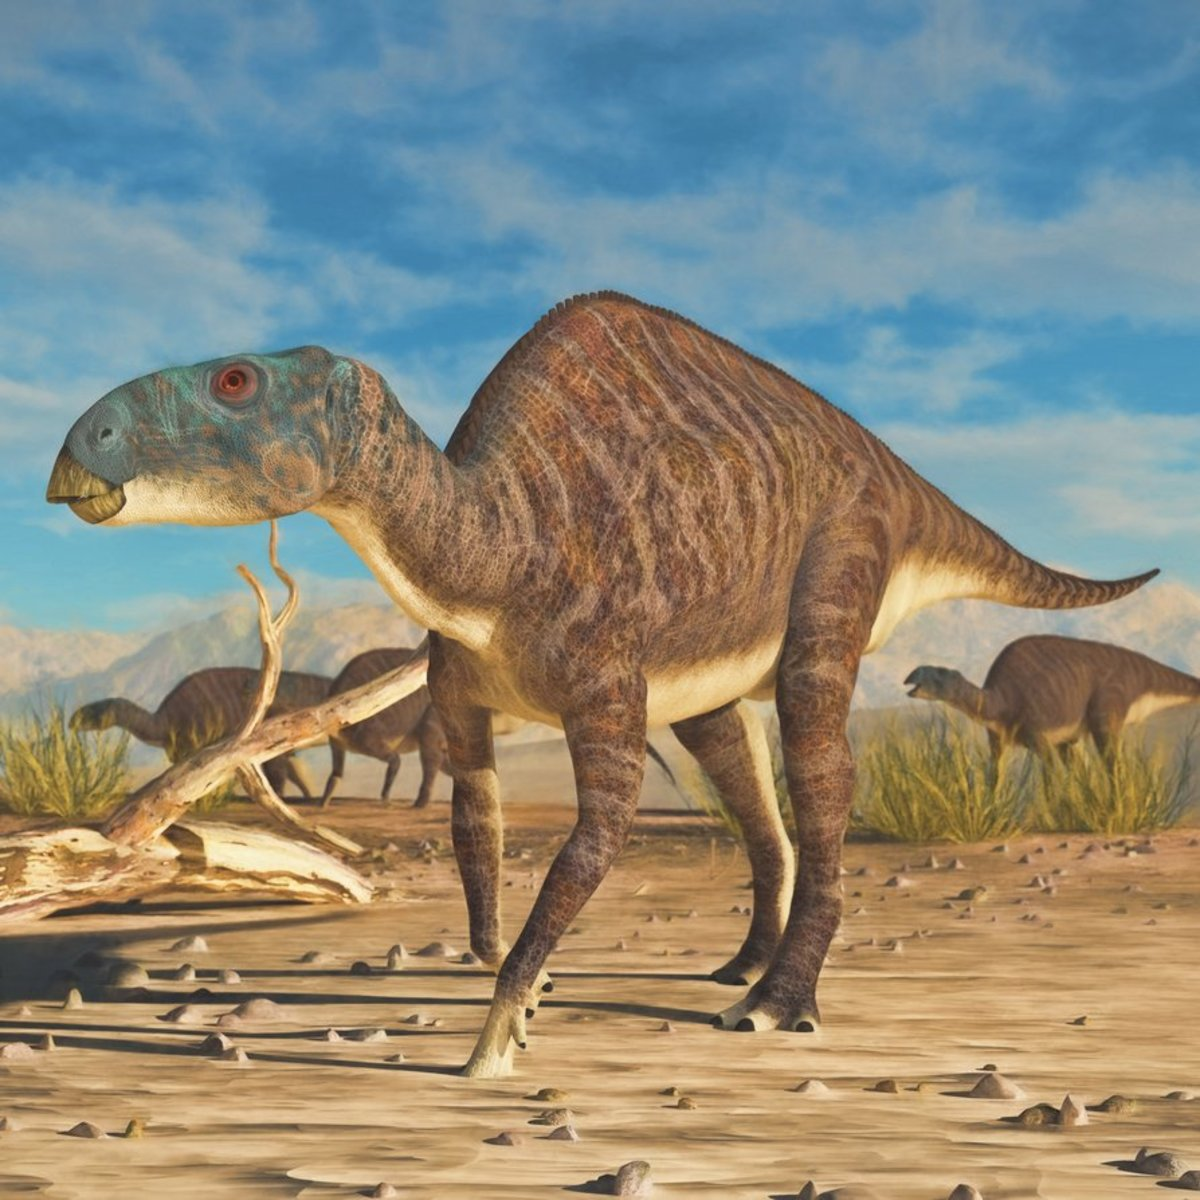 Eotrachodon herd, by James Kuether.